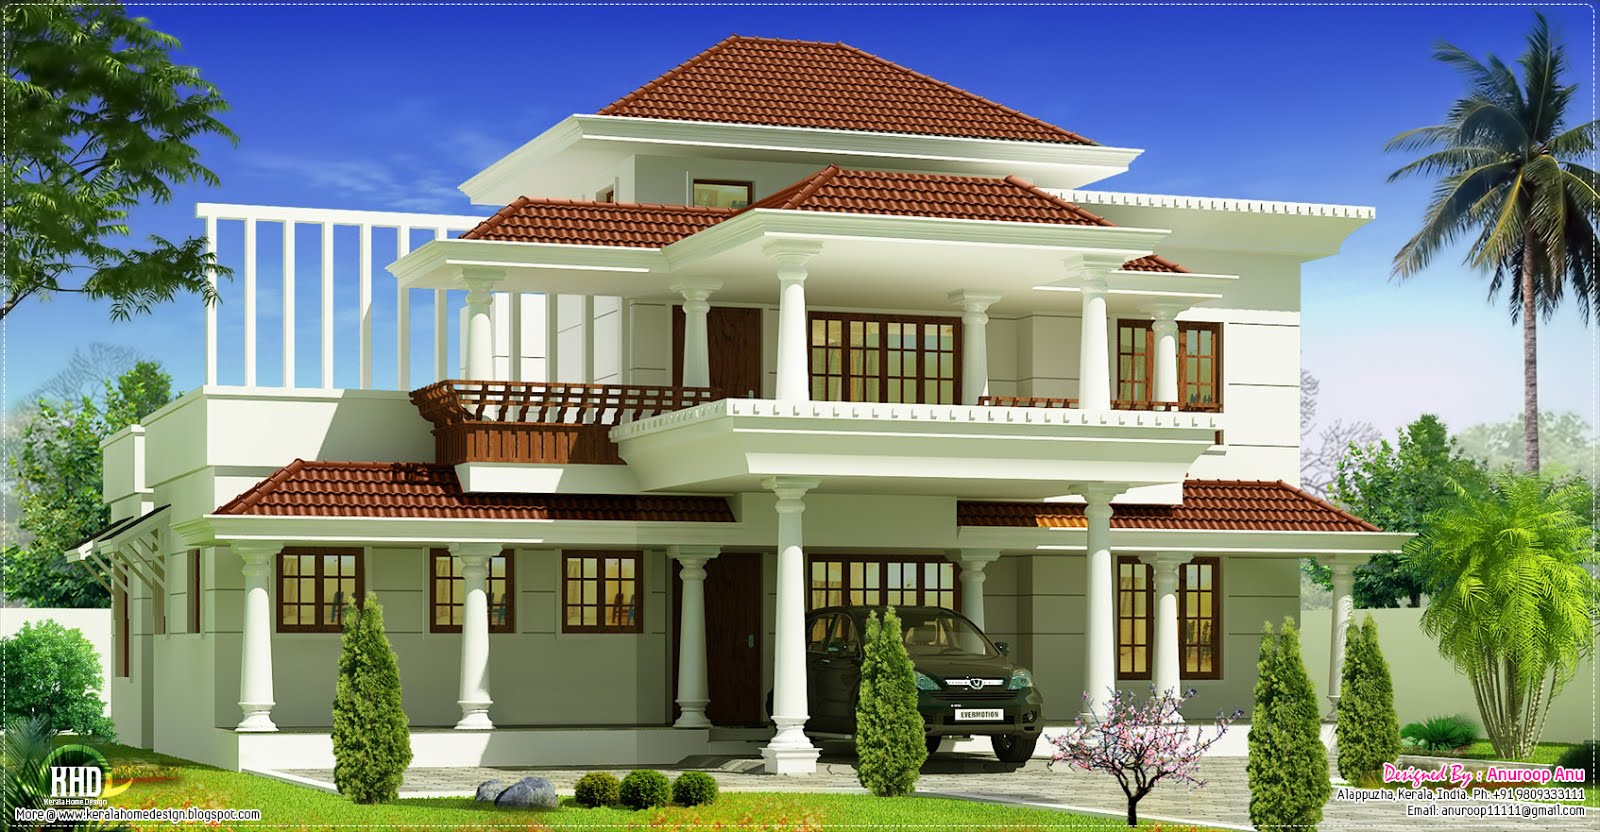 Kerala house models houses plans designs for Homes models and plans